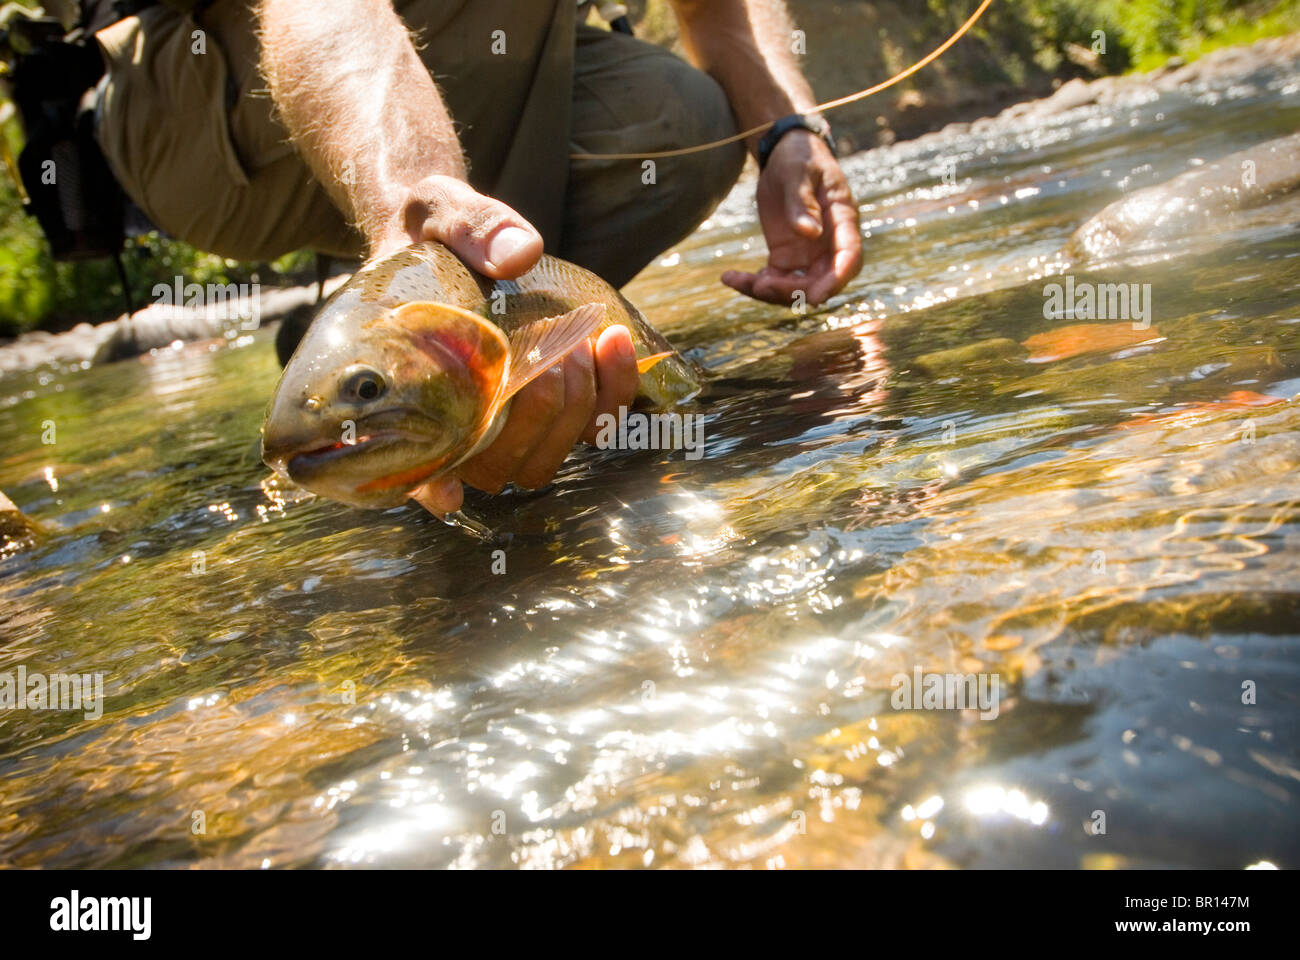 """cutthroat trout and yellowstone national park Also talking were jason rhoten, an fwp fisheries biologist based in absarokee, and phil doepke, a yellowstone national park fisheries biologist """"we wanted to cover more important conservation issues this year,"""" said lyle courtnage, president of the fly fishers """"the native cutthroat trout has become a."""